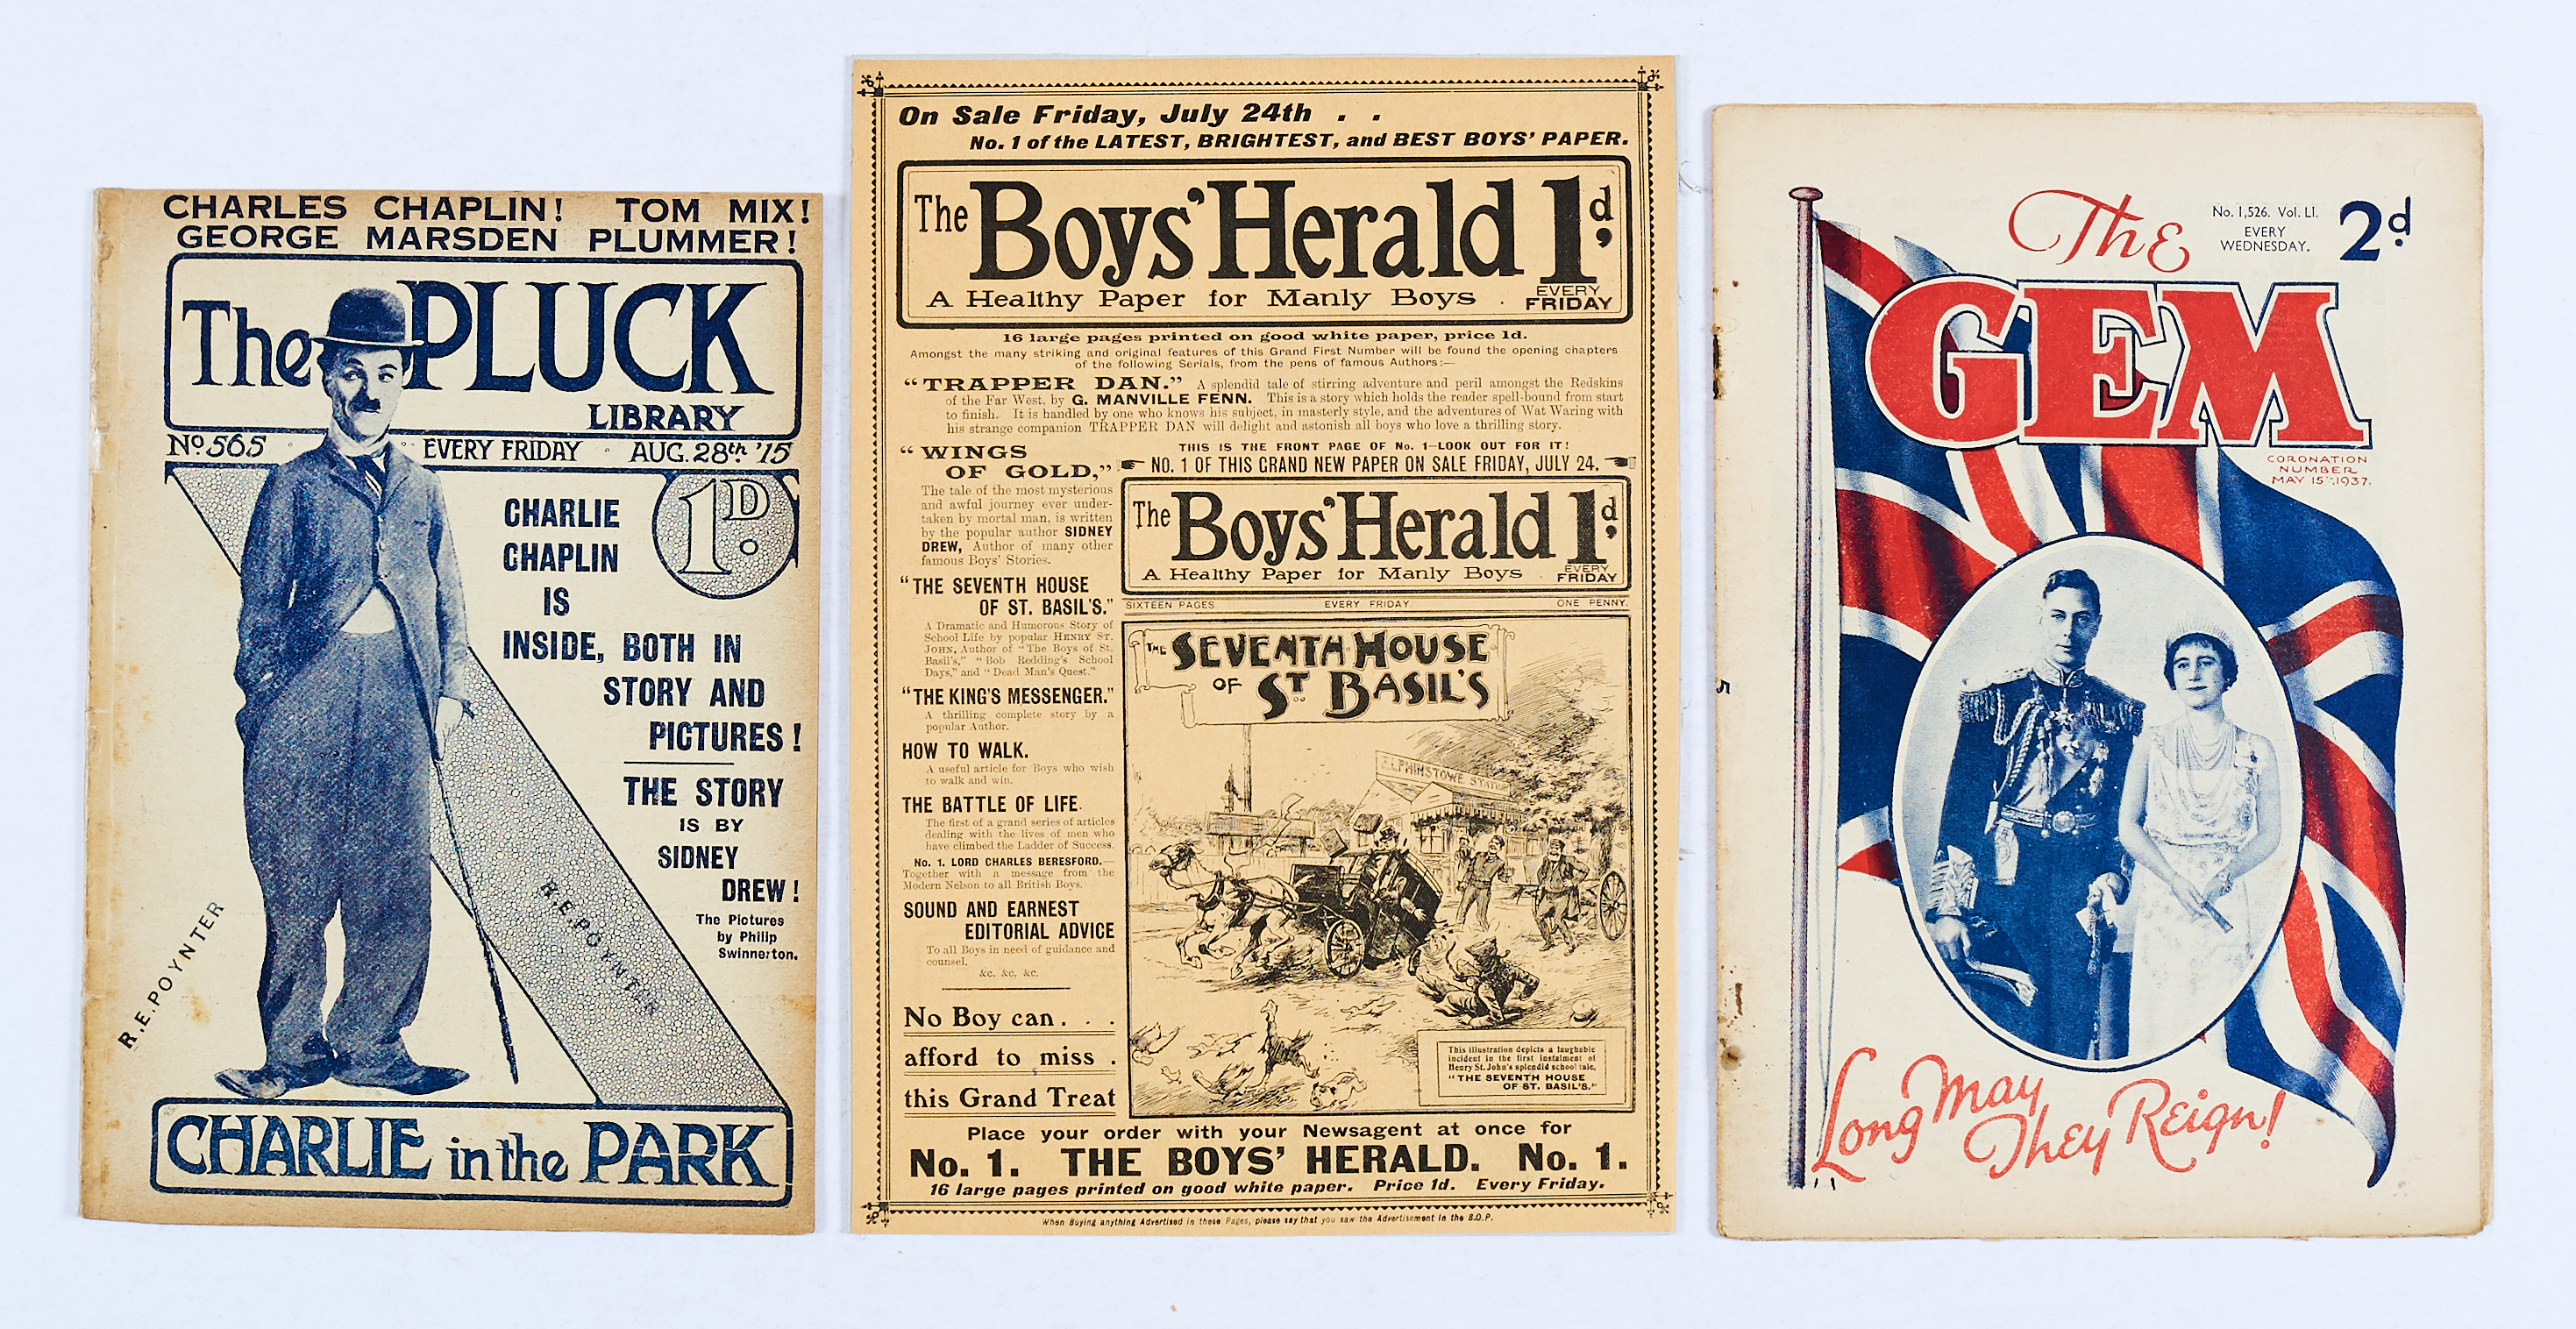 Lot 3 - Boy's Herald No 1 advertising pamphlet (1903) with Pluck 565 (1915), Charlie Chaplin early photo